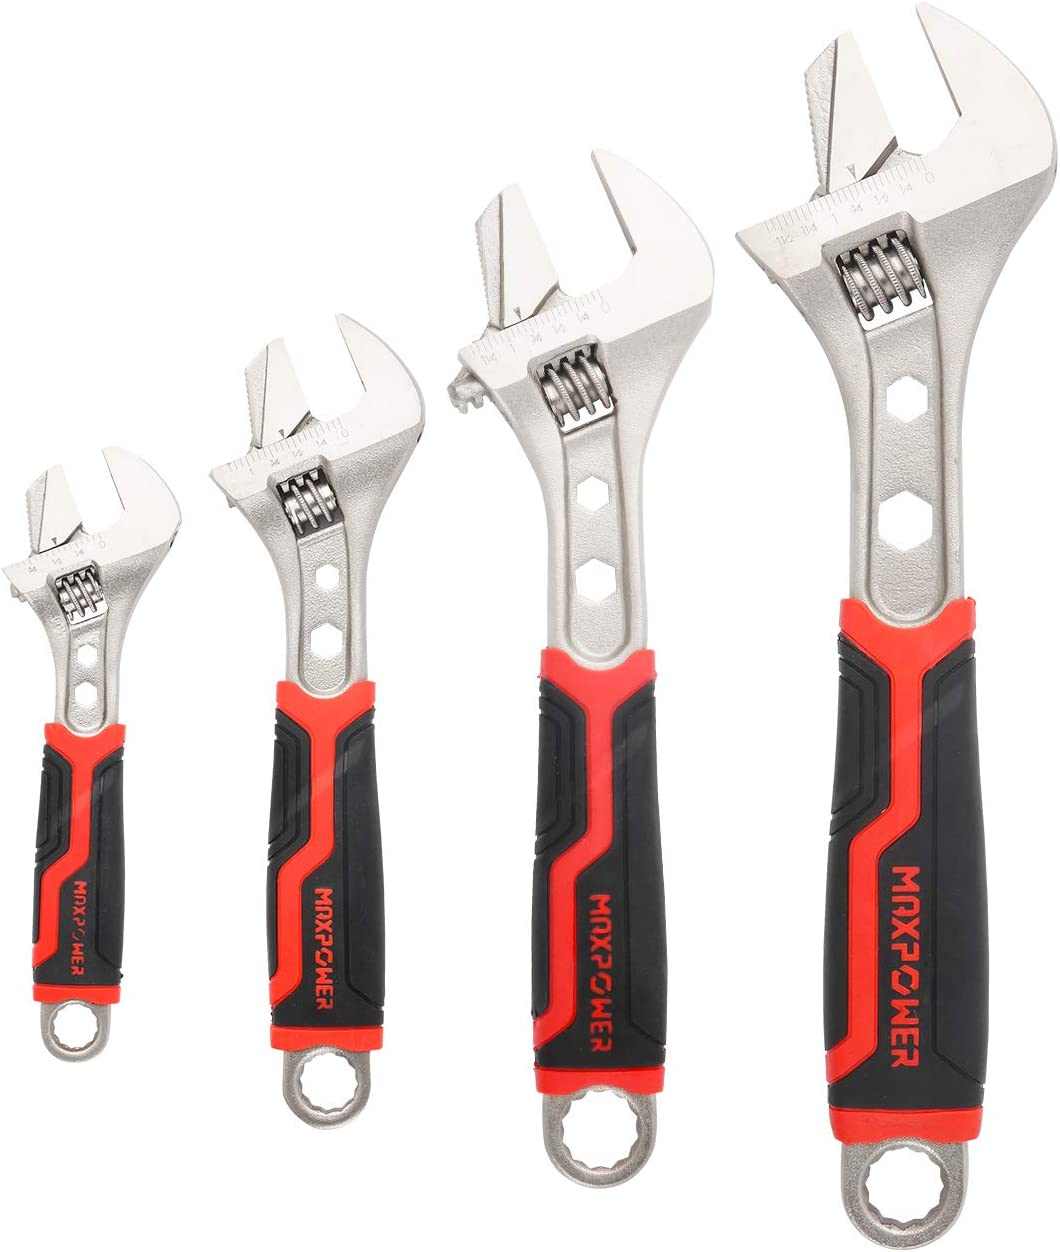 MAXPOWER 4 PCS Adjustable Wrench, Reversible Jaw Adjustable Spanner Wrench Set with Box End and Hex Function ( 6 in. 8 in. 10 in. 12 in. )